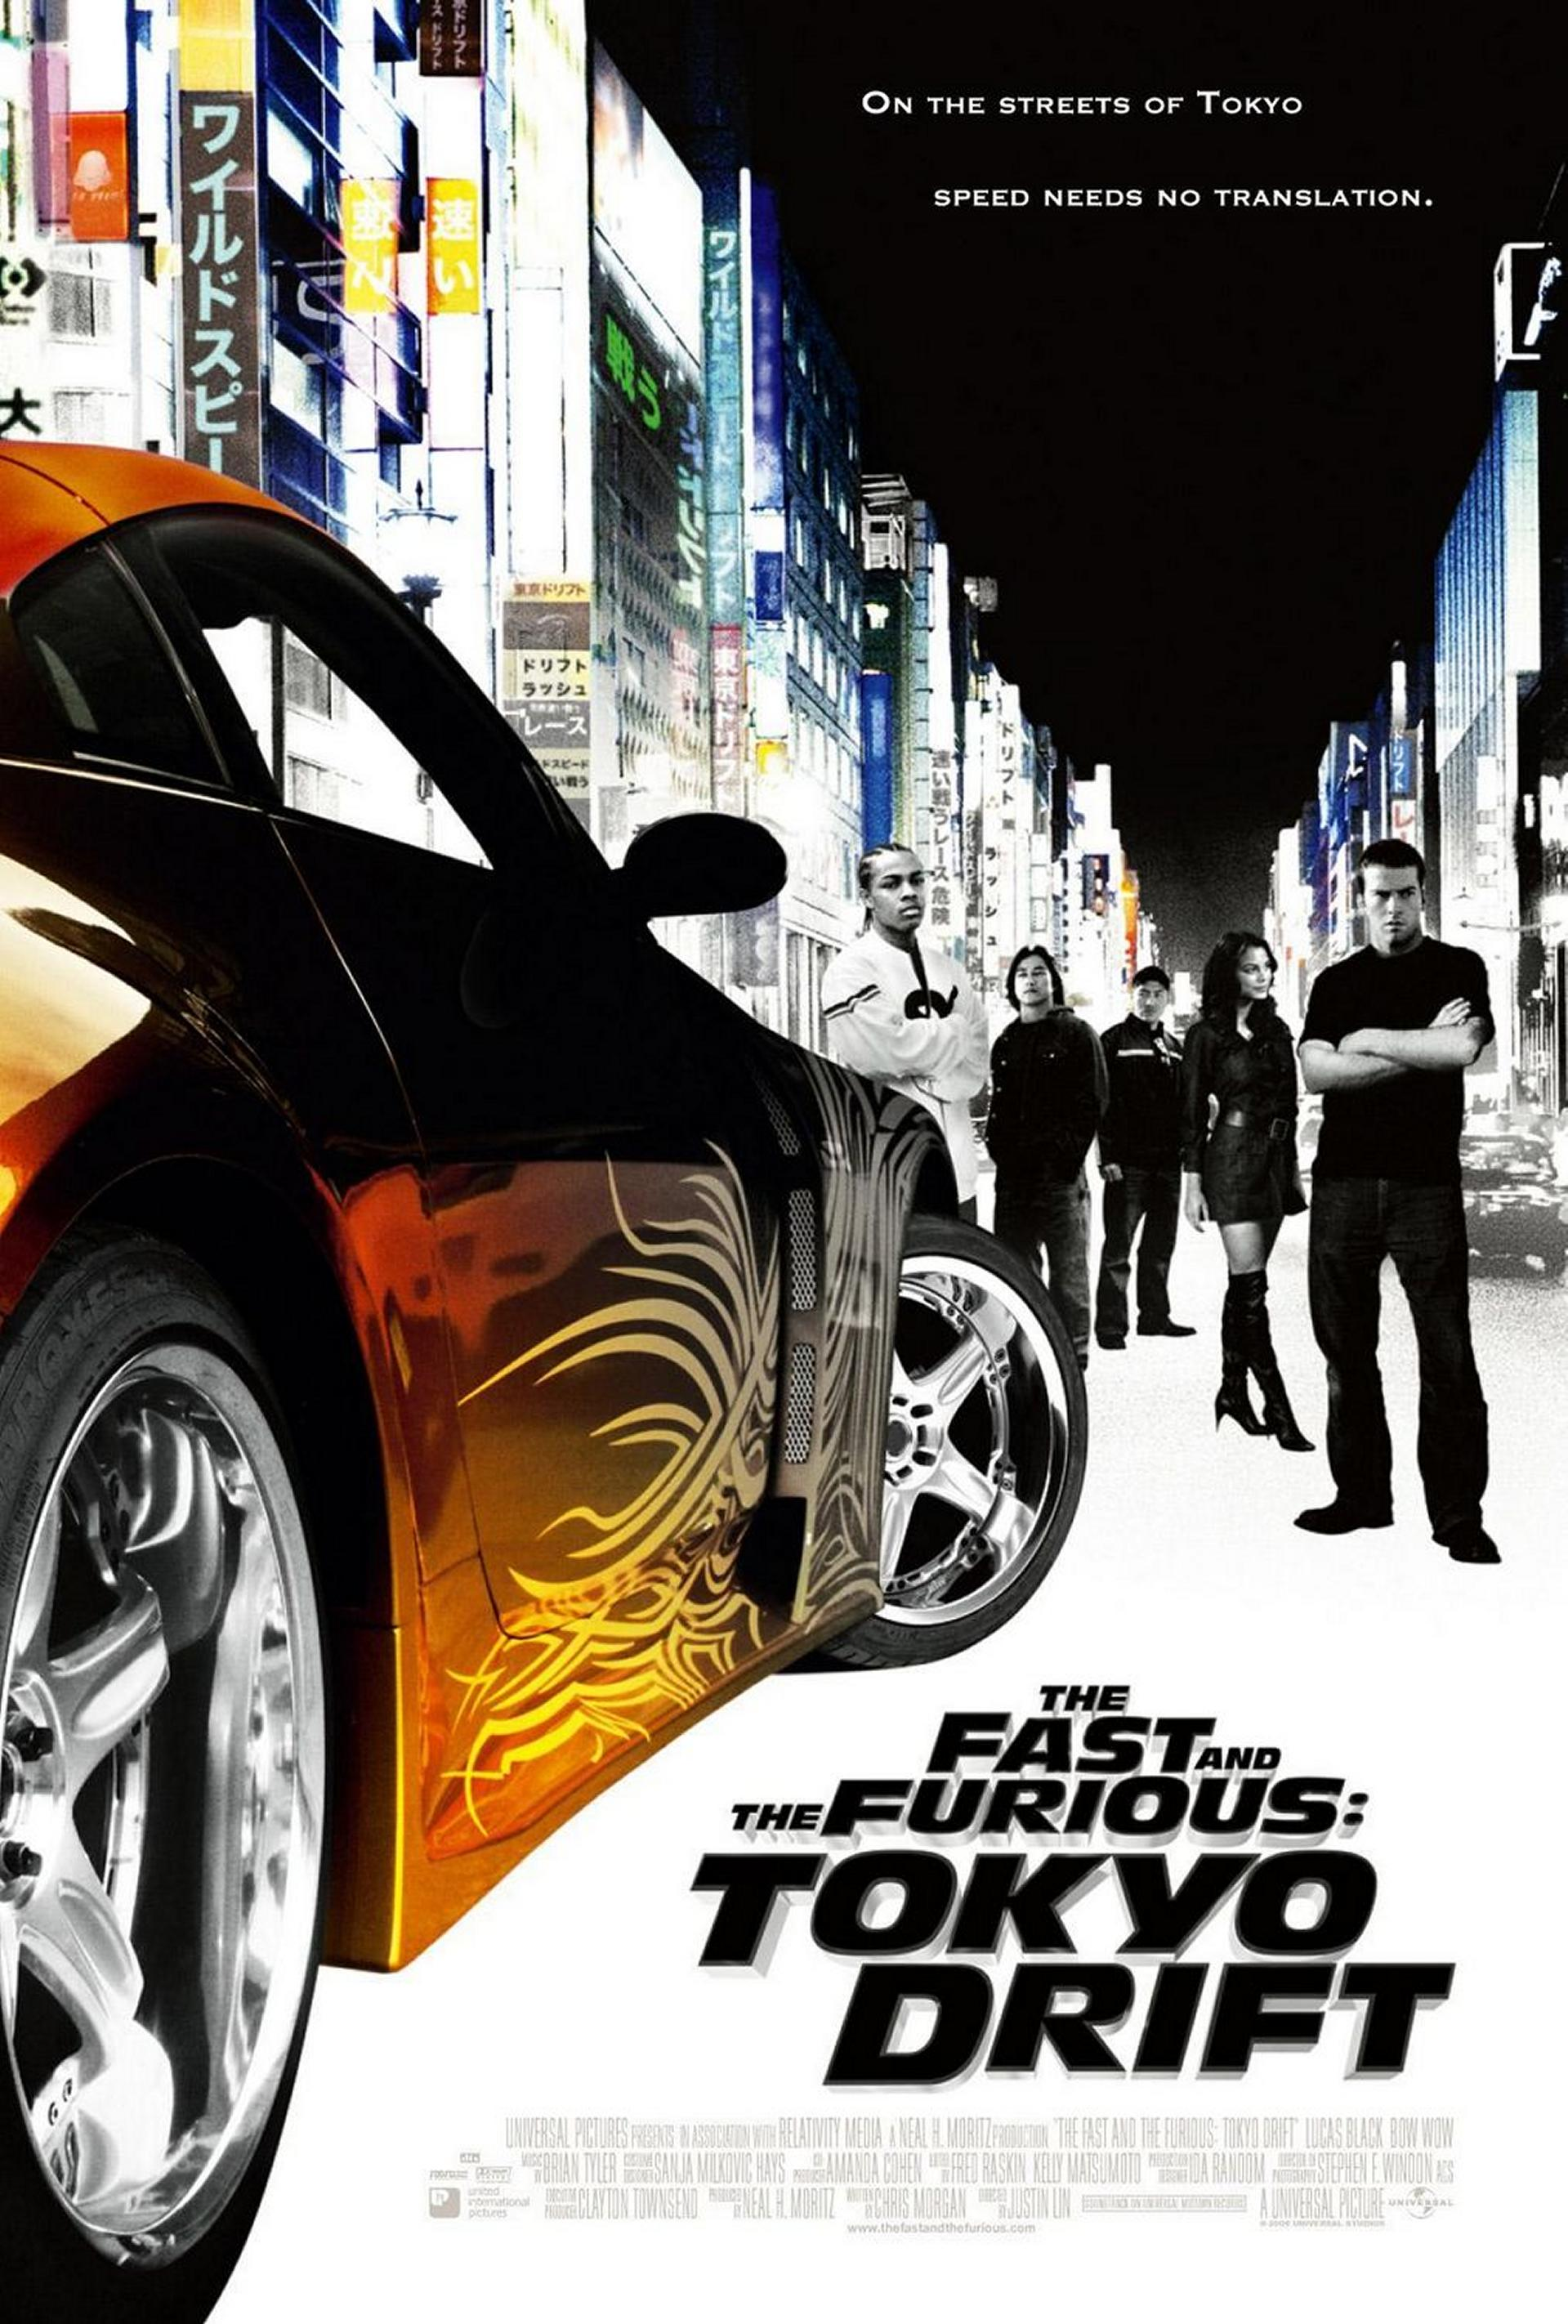 دانلود فیلم The Fast and the Furious: Tokyo Drift 2006